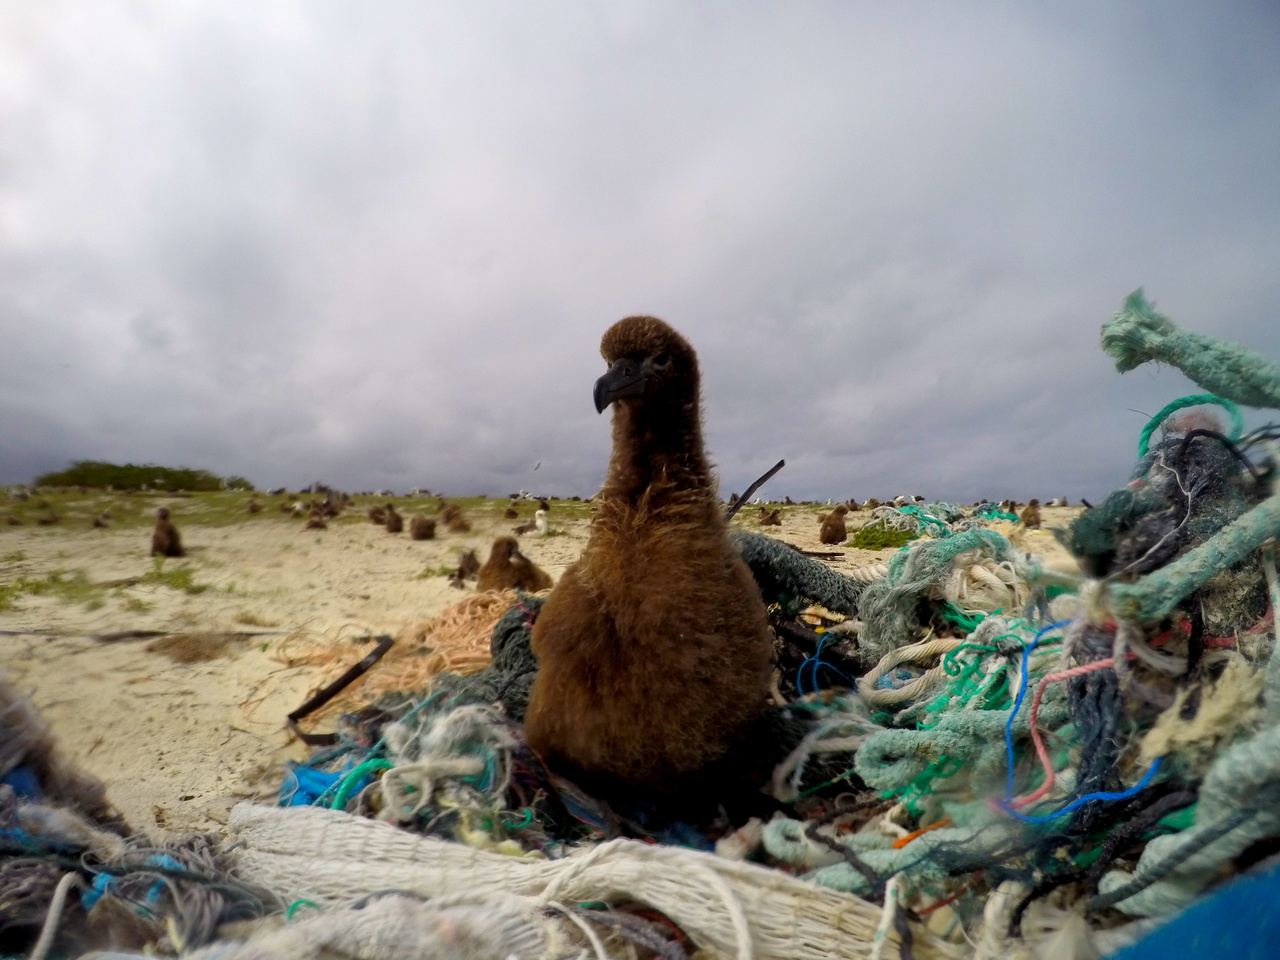 On April 15, 2016, the team members started removing derelict fishing gear and plastics from the shorelines of Eastern Island. A Laysan Albatross chick was found perching on a pile of derelict fishing net. Photo: NOAA Fisheries